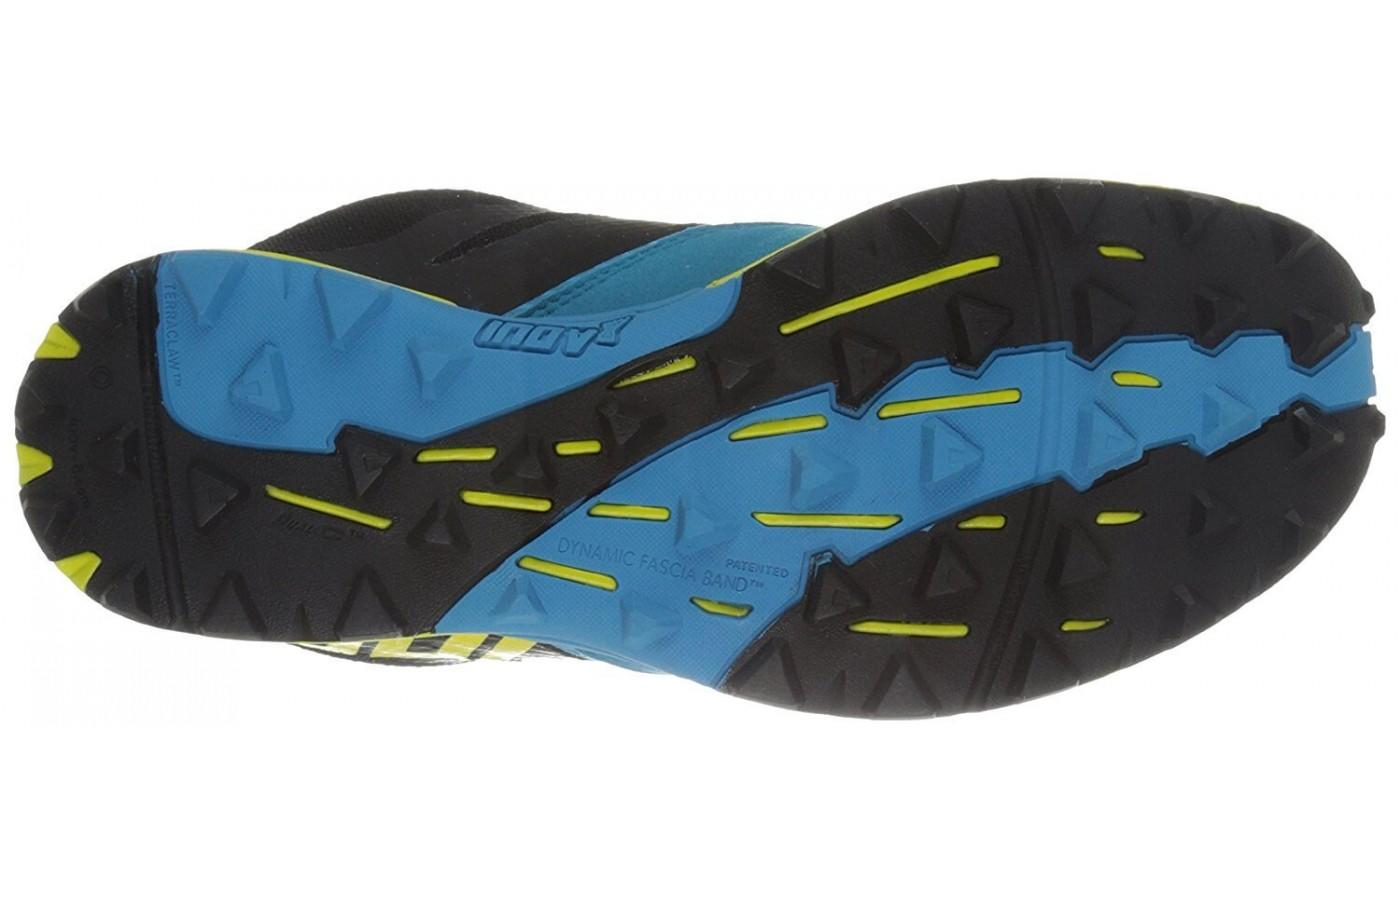 The Inov-8 Terraclaw 250 outsole uses Dual-C compound for durability and stick rubber for grip